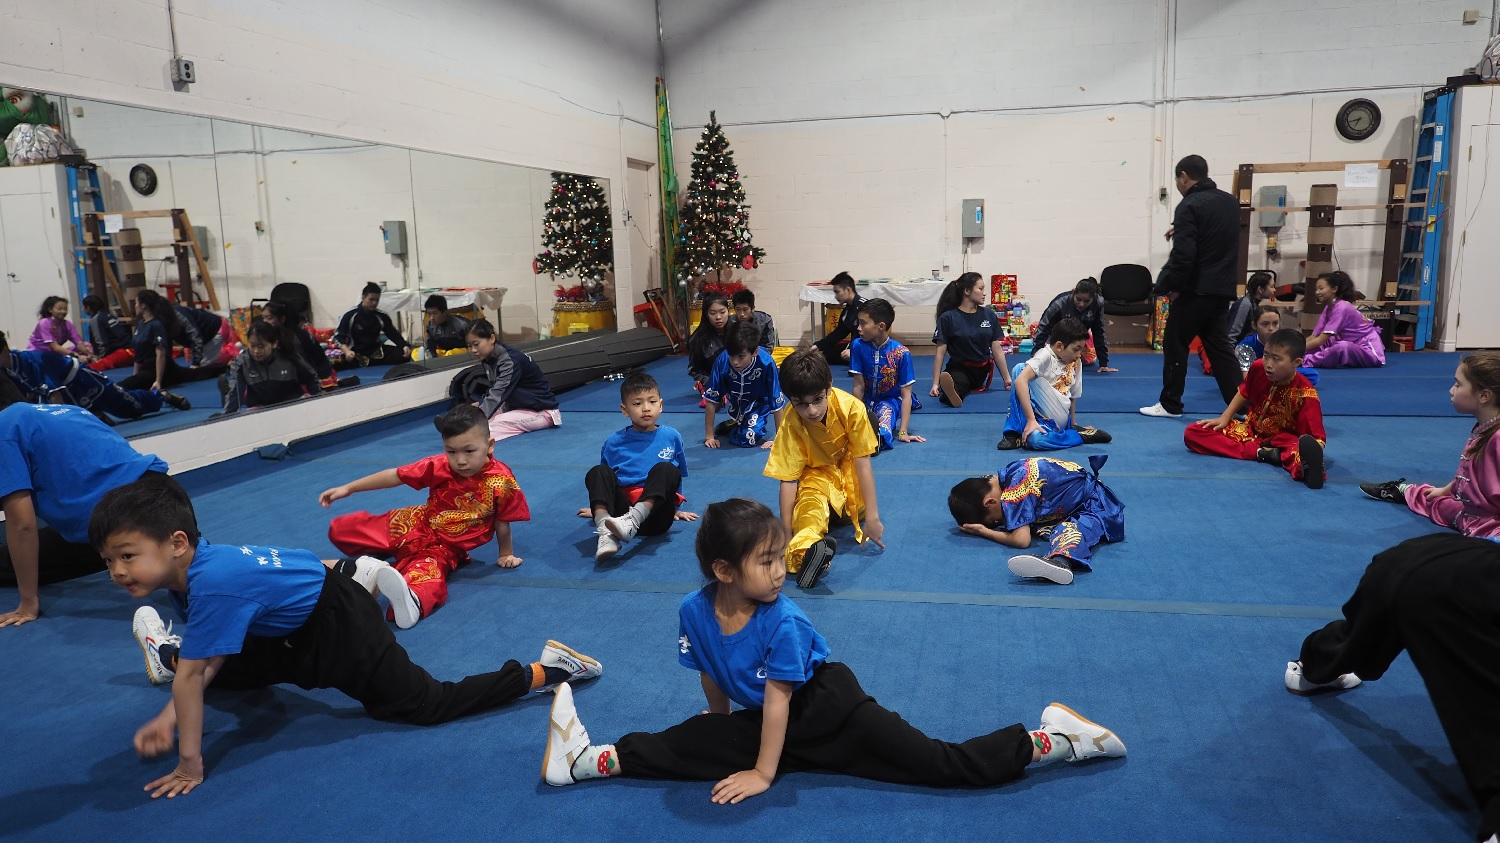 wayland-li-wushu-canada-ontario-toronto-classes-taolu-holiday-party-2017-18.jpg